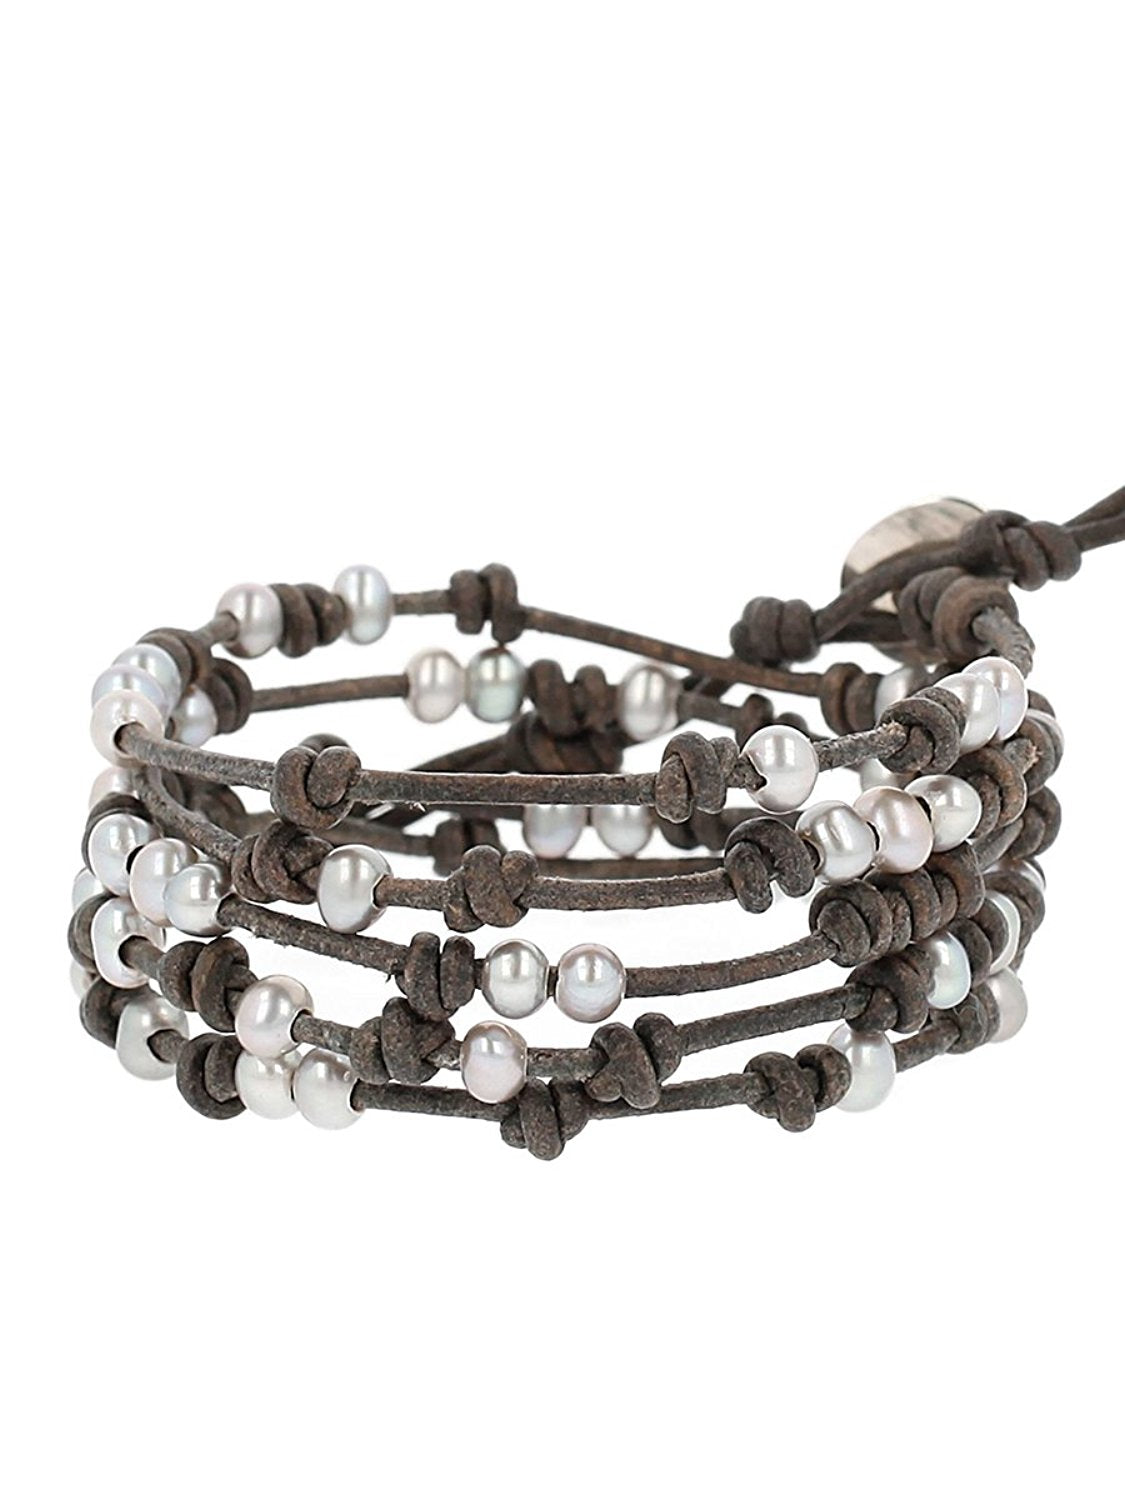 Chan Luu Grey Freshwater Cultured Pearls On A Natural Grey Brown Knotted Leather Wrap Bracelet